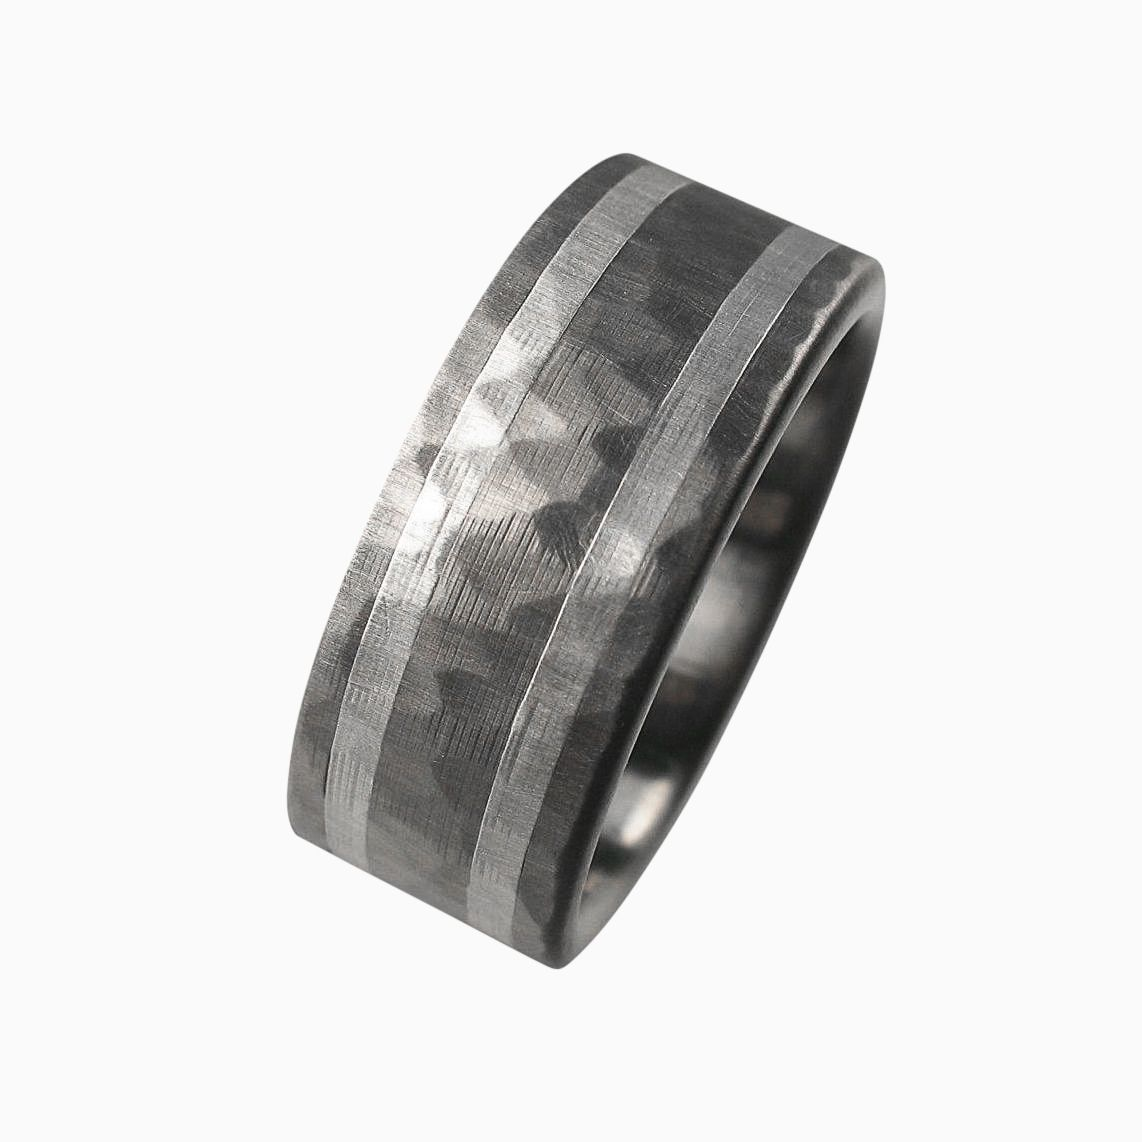 hammered titanium buy a bands spexton band made s to custom mens by order wedding handmade men